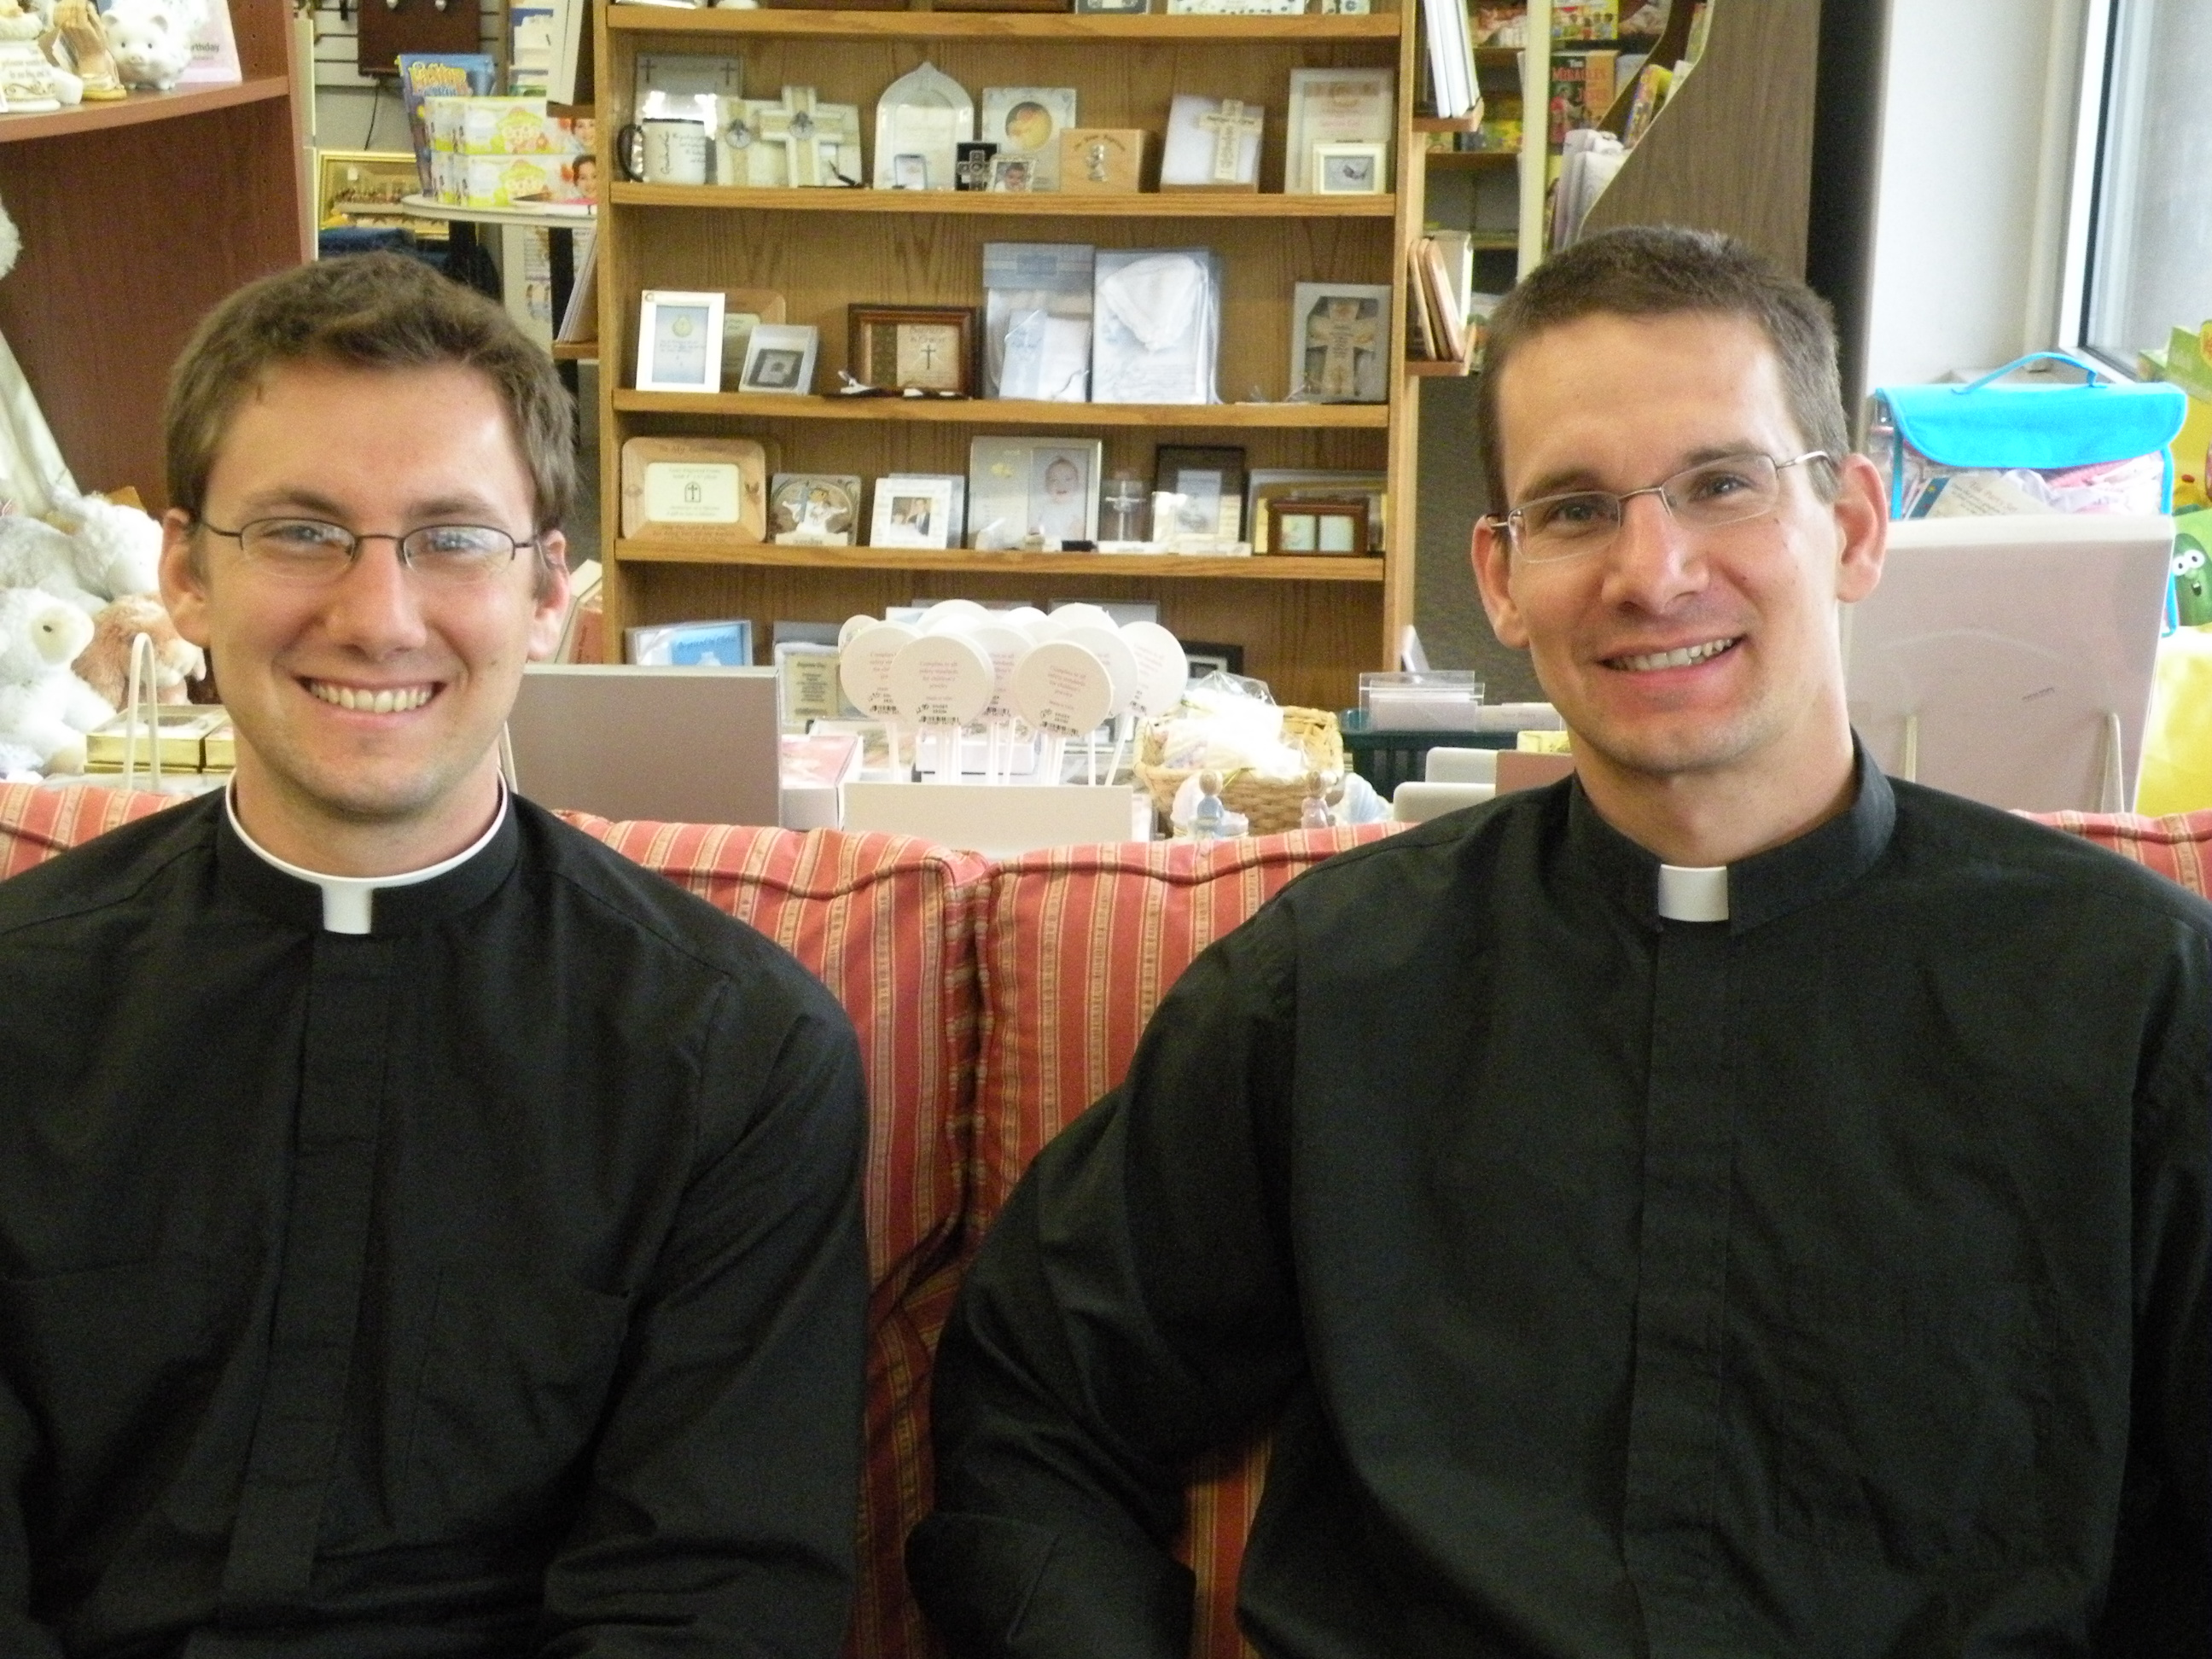 Brothers share priestly fraternity - Today's Catholic